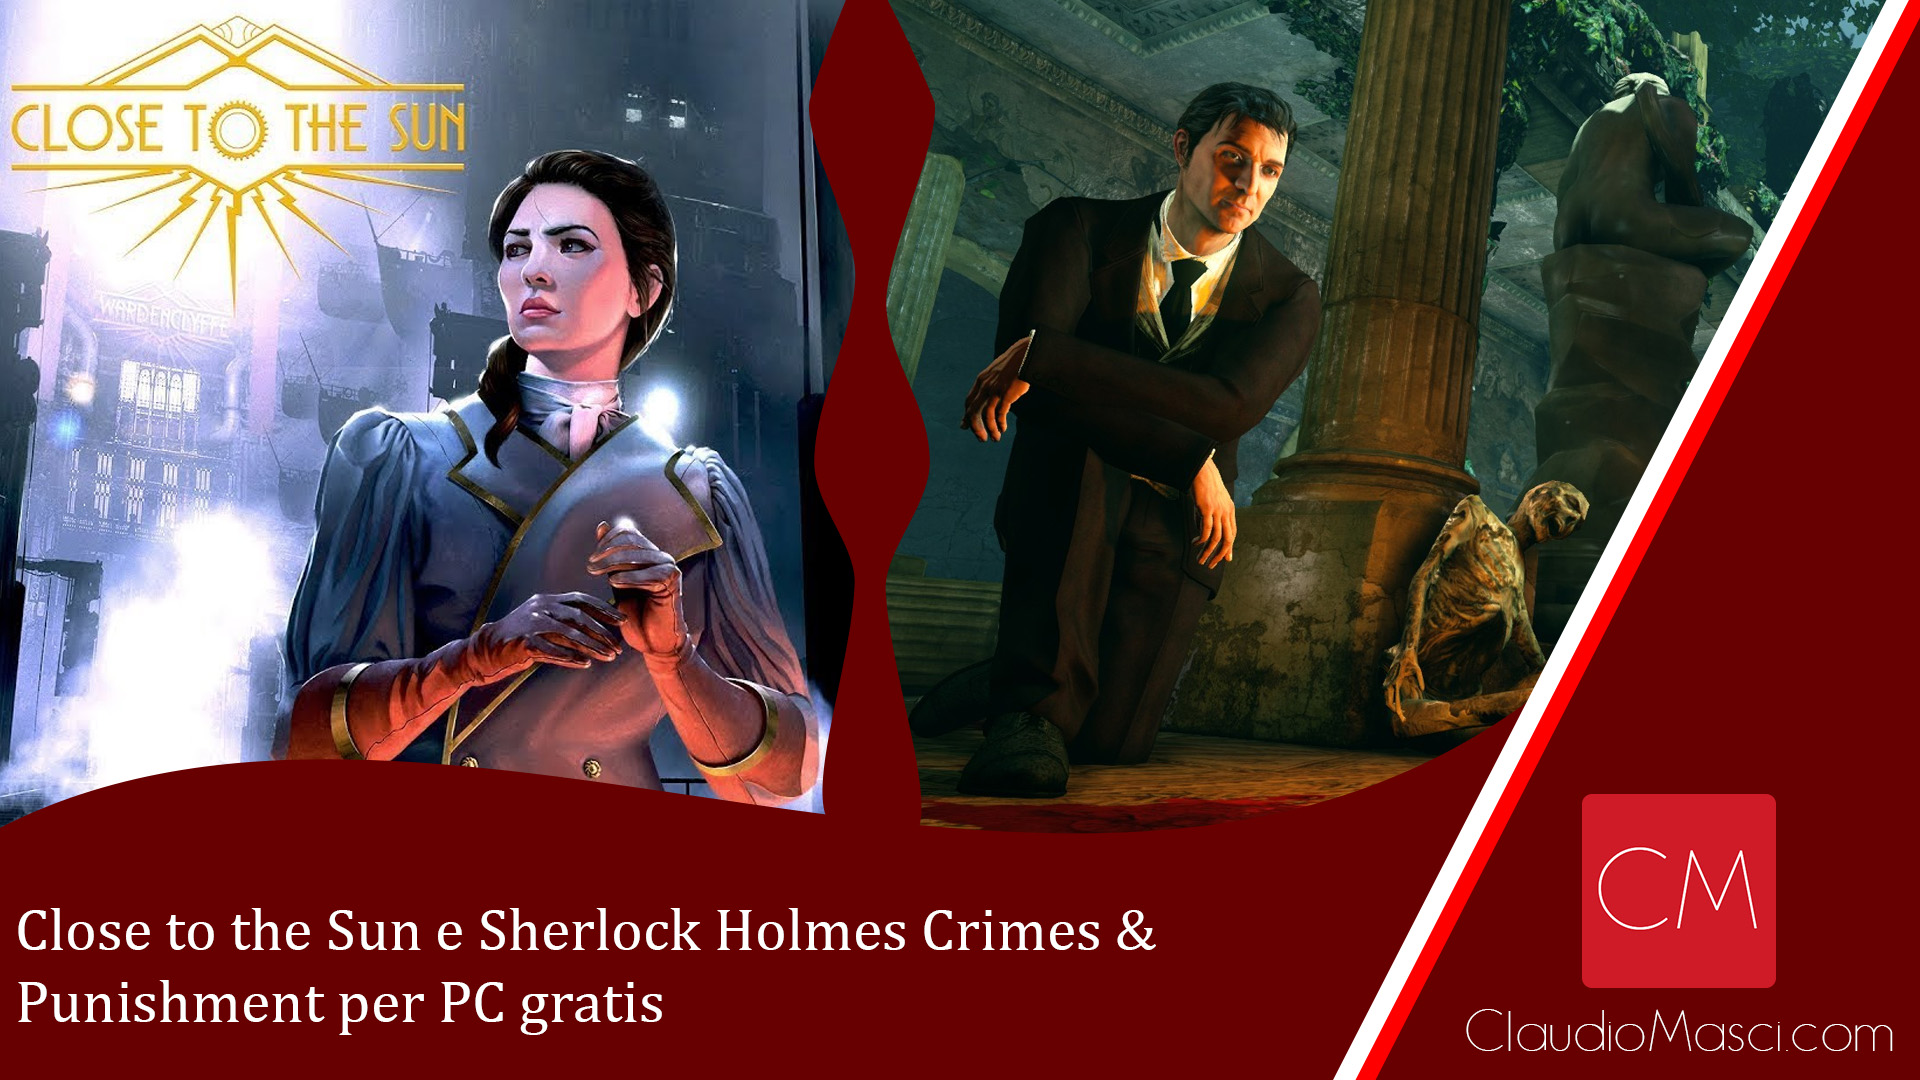 Close to the Sun e Sherlock Holmes Crimes & Punishment per PC gratis